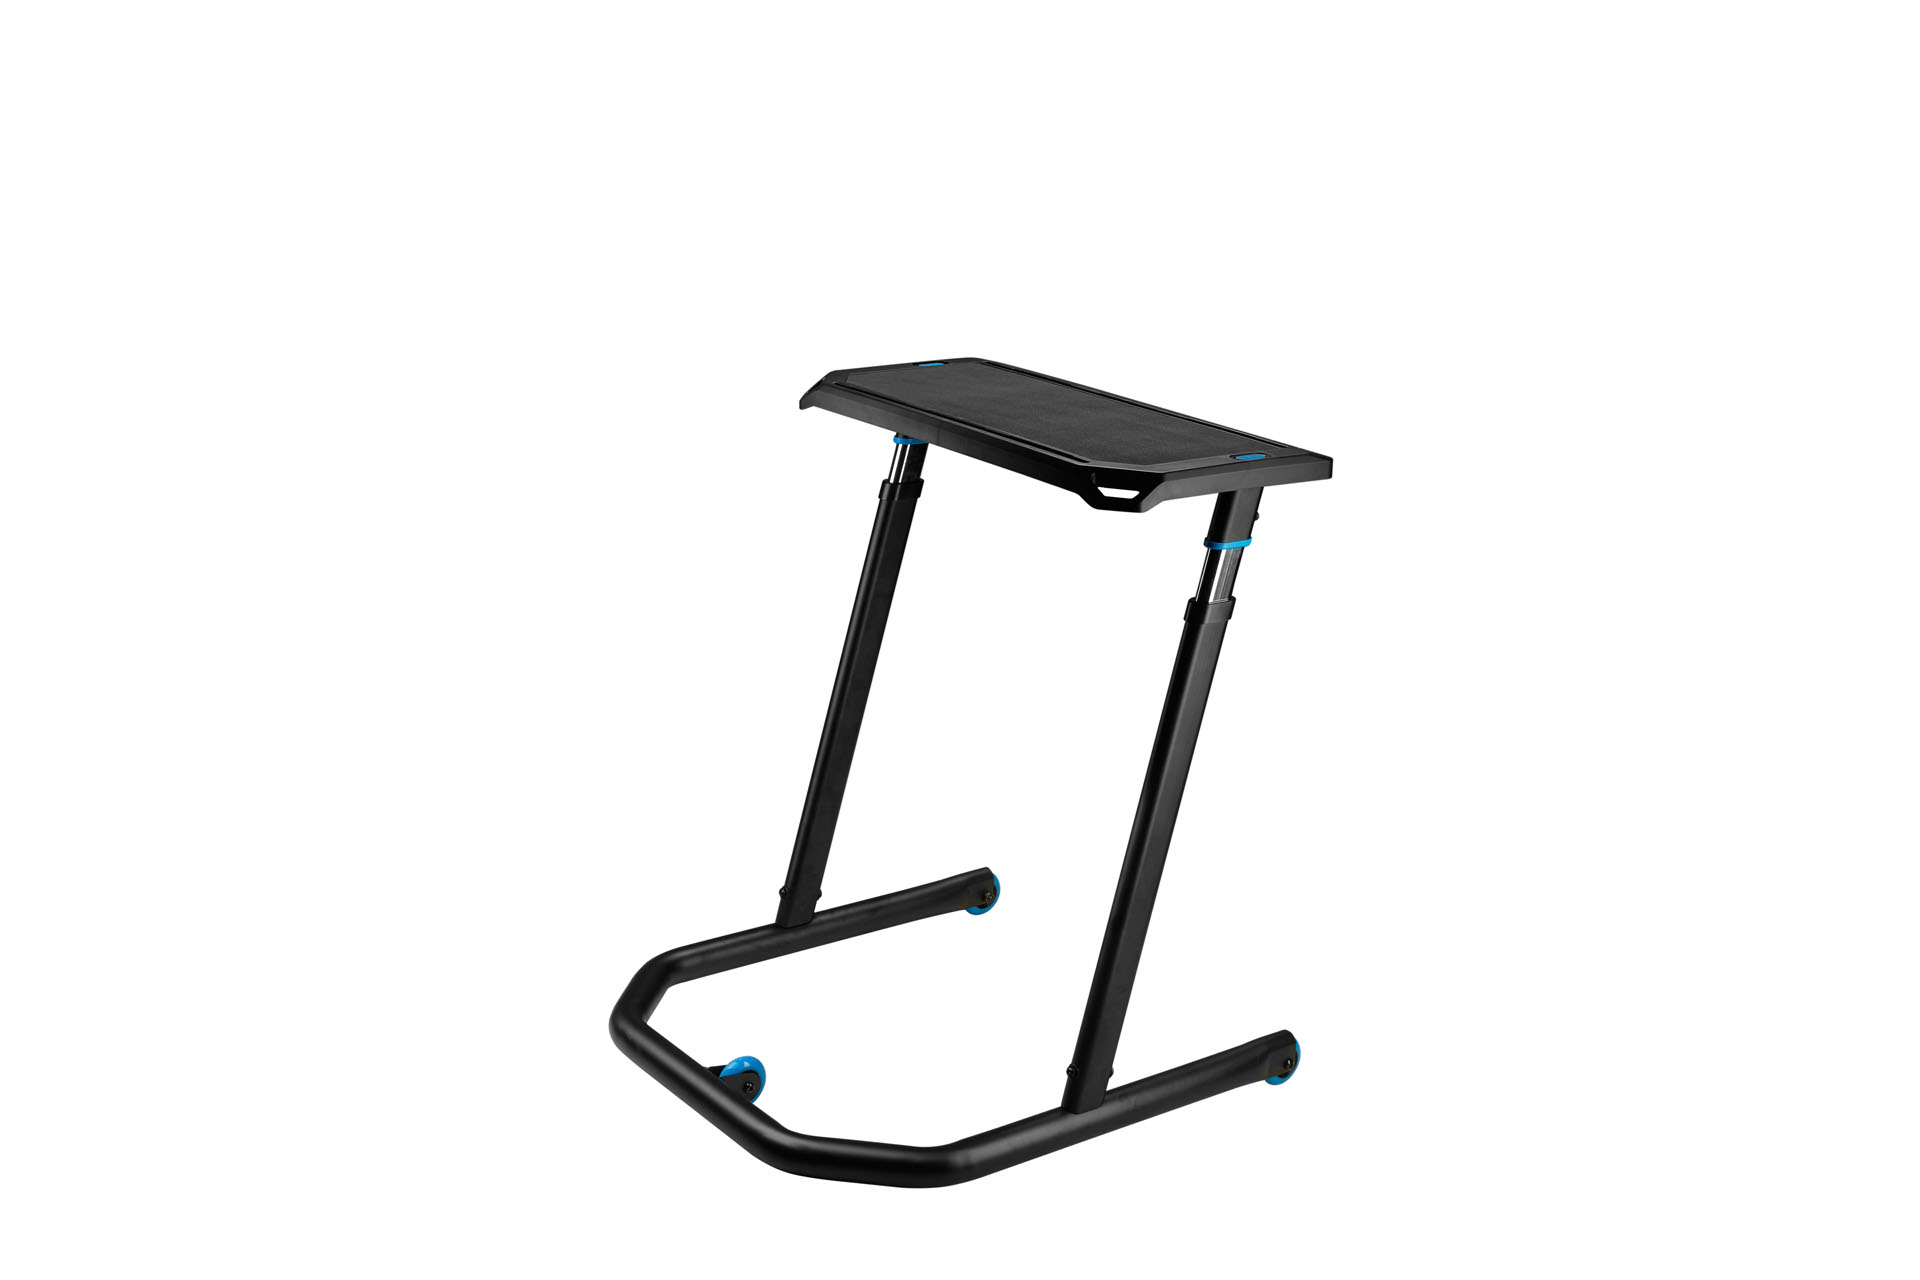 KICKR Indoor Cycling Desk-Picture-02